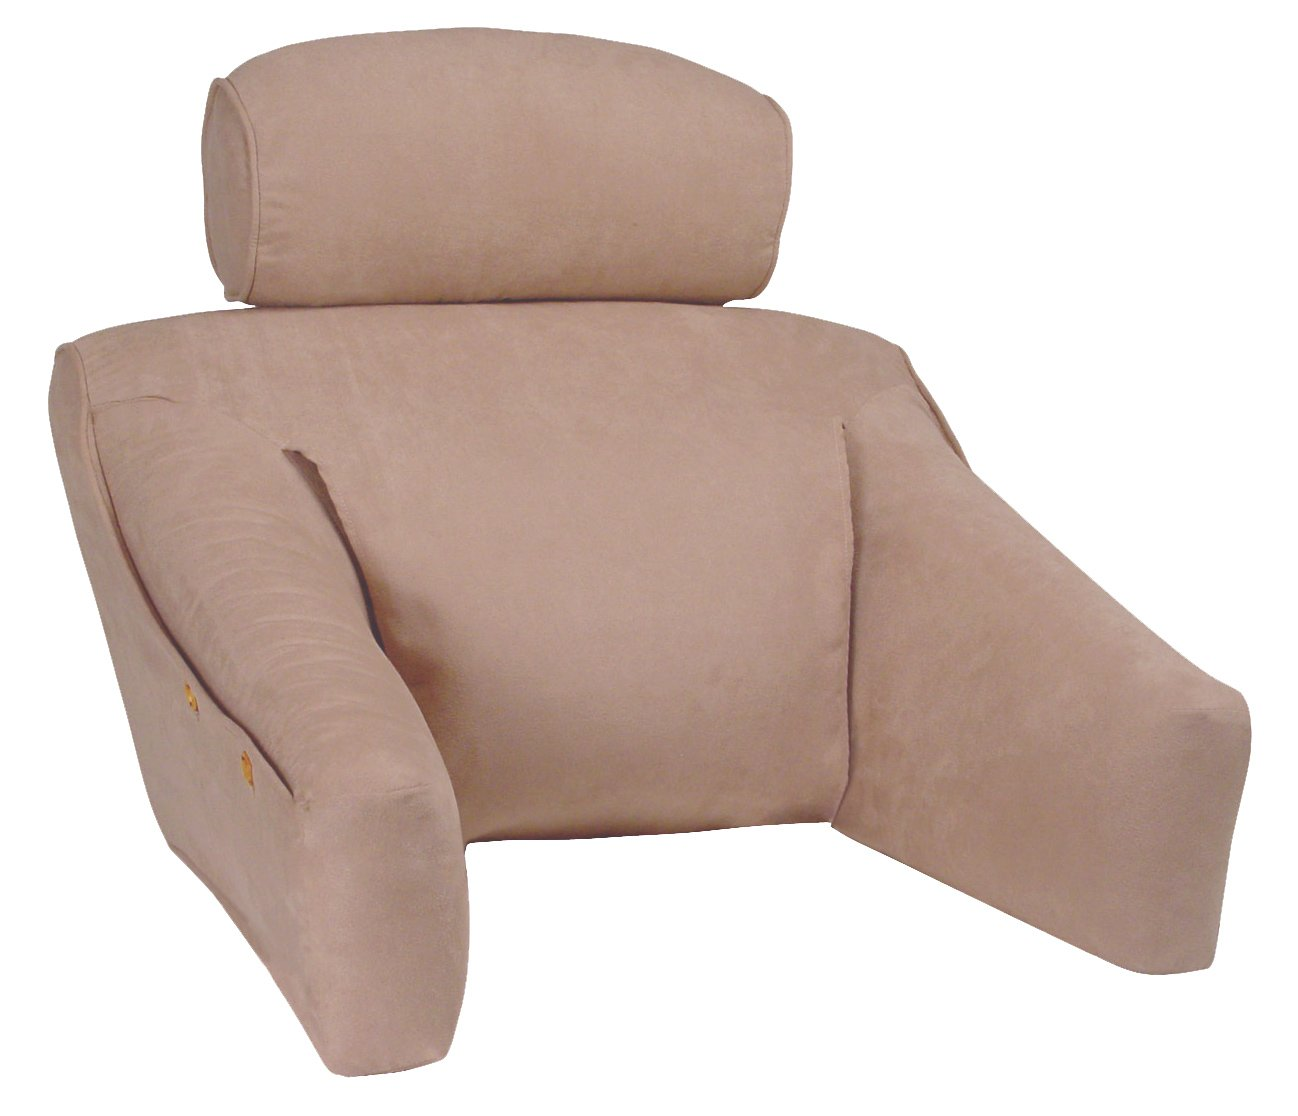 Warm Taupe Premium MicroSuede Bedlounge Reading Pillow - Reading in Bed, for Deep Couches, Watching TV and Reading to Children. REGULAR SIZE